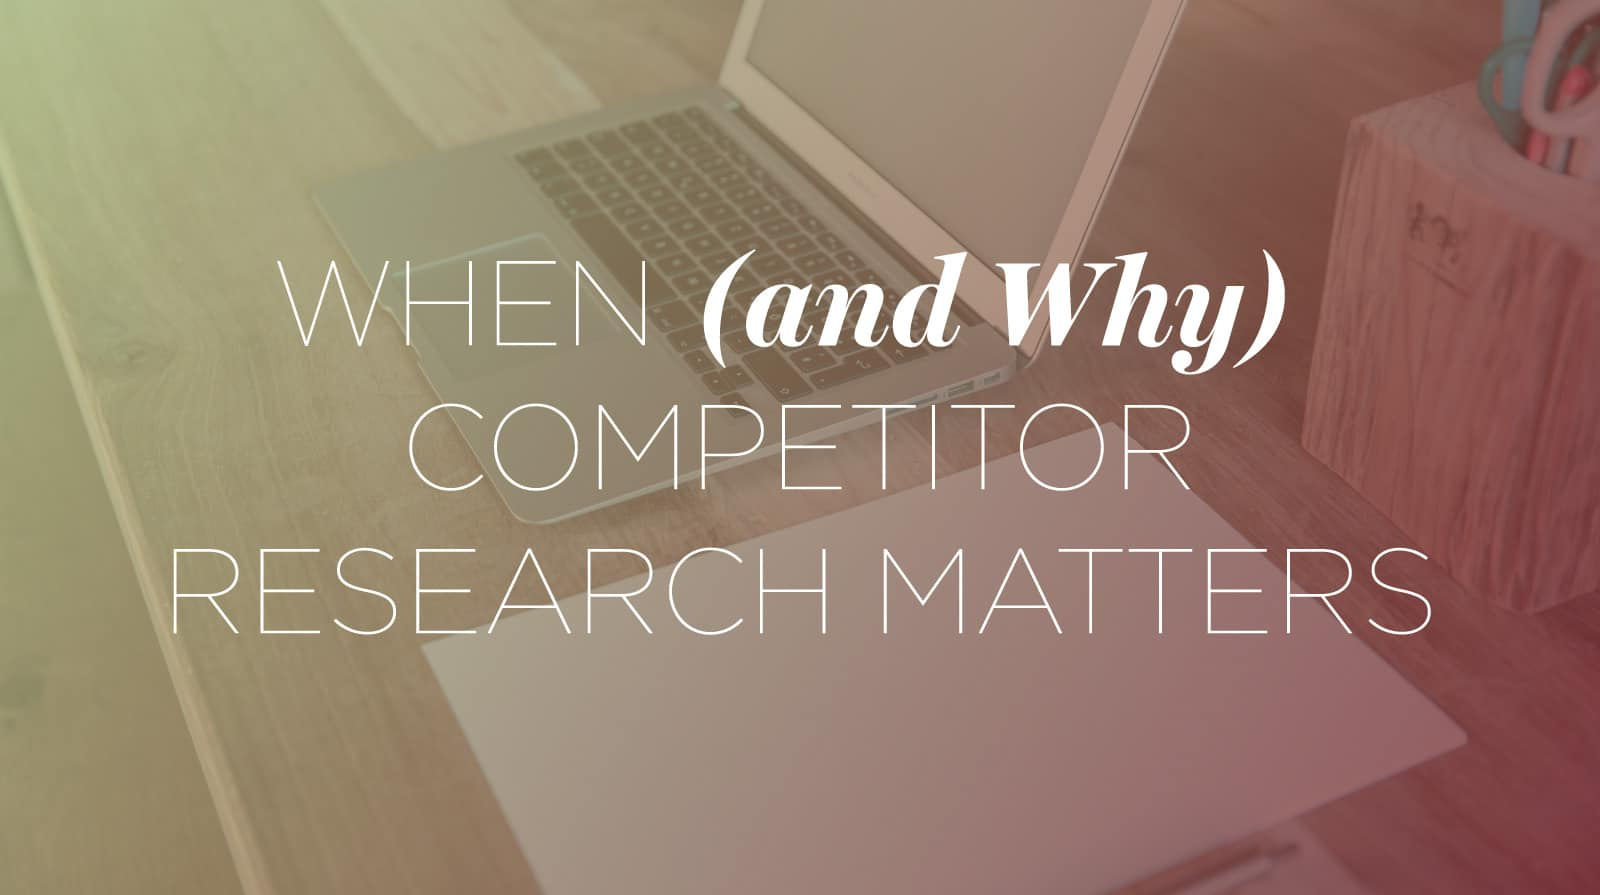 When and Why Competitor Research Matters